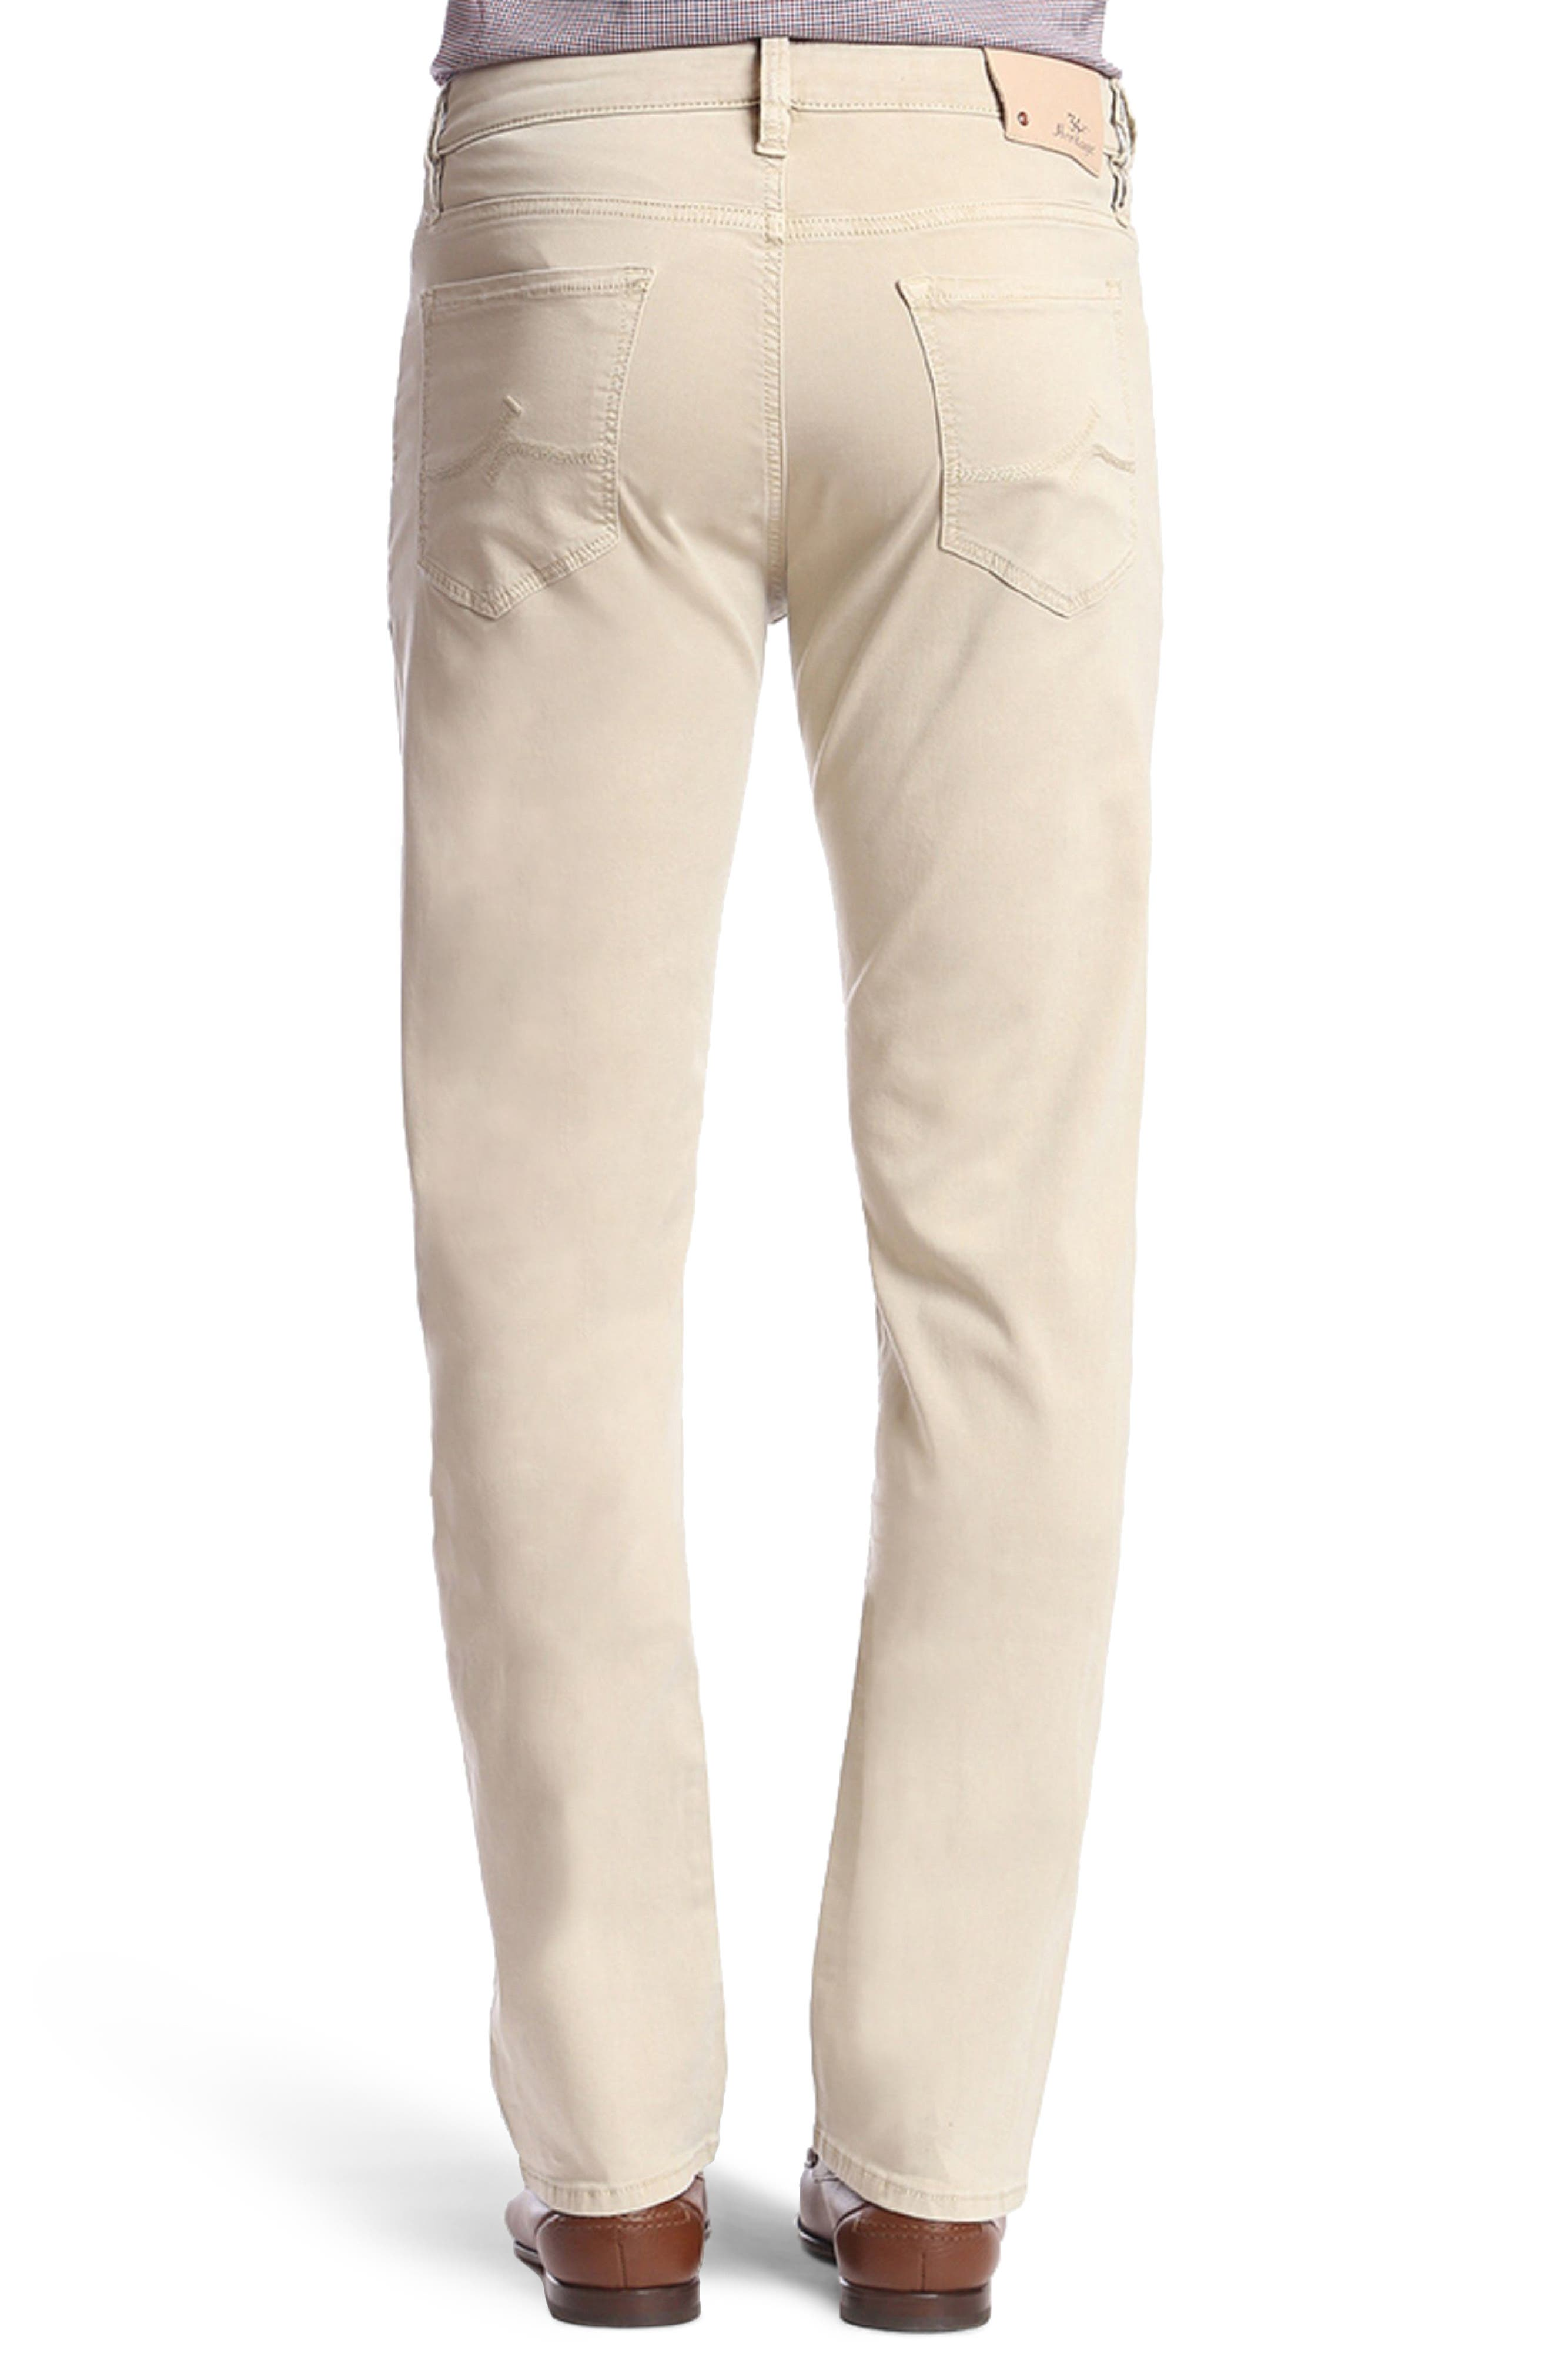 Charisma Relaxed Fit Jeans,                             Alternate thumbnail 2, color,                             Stone Twill